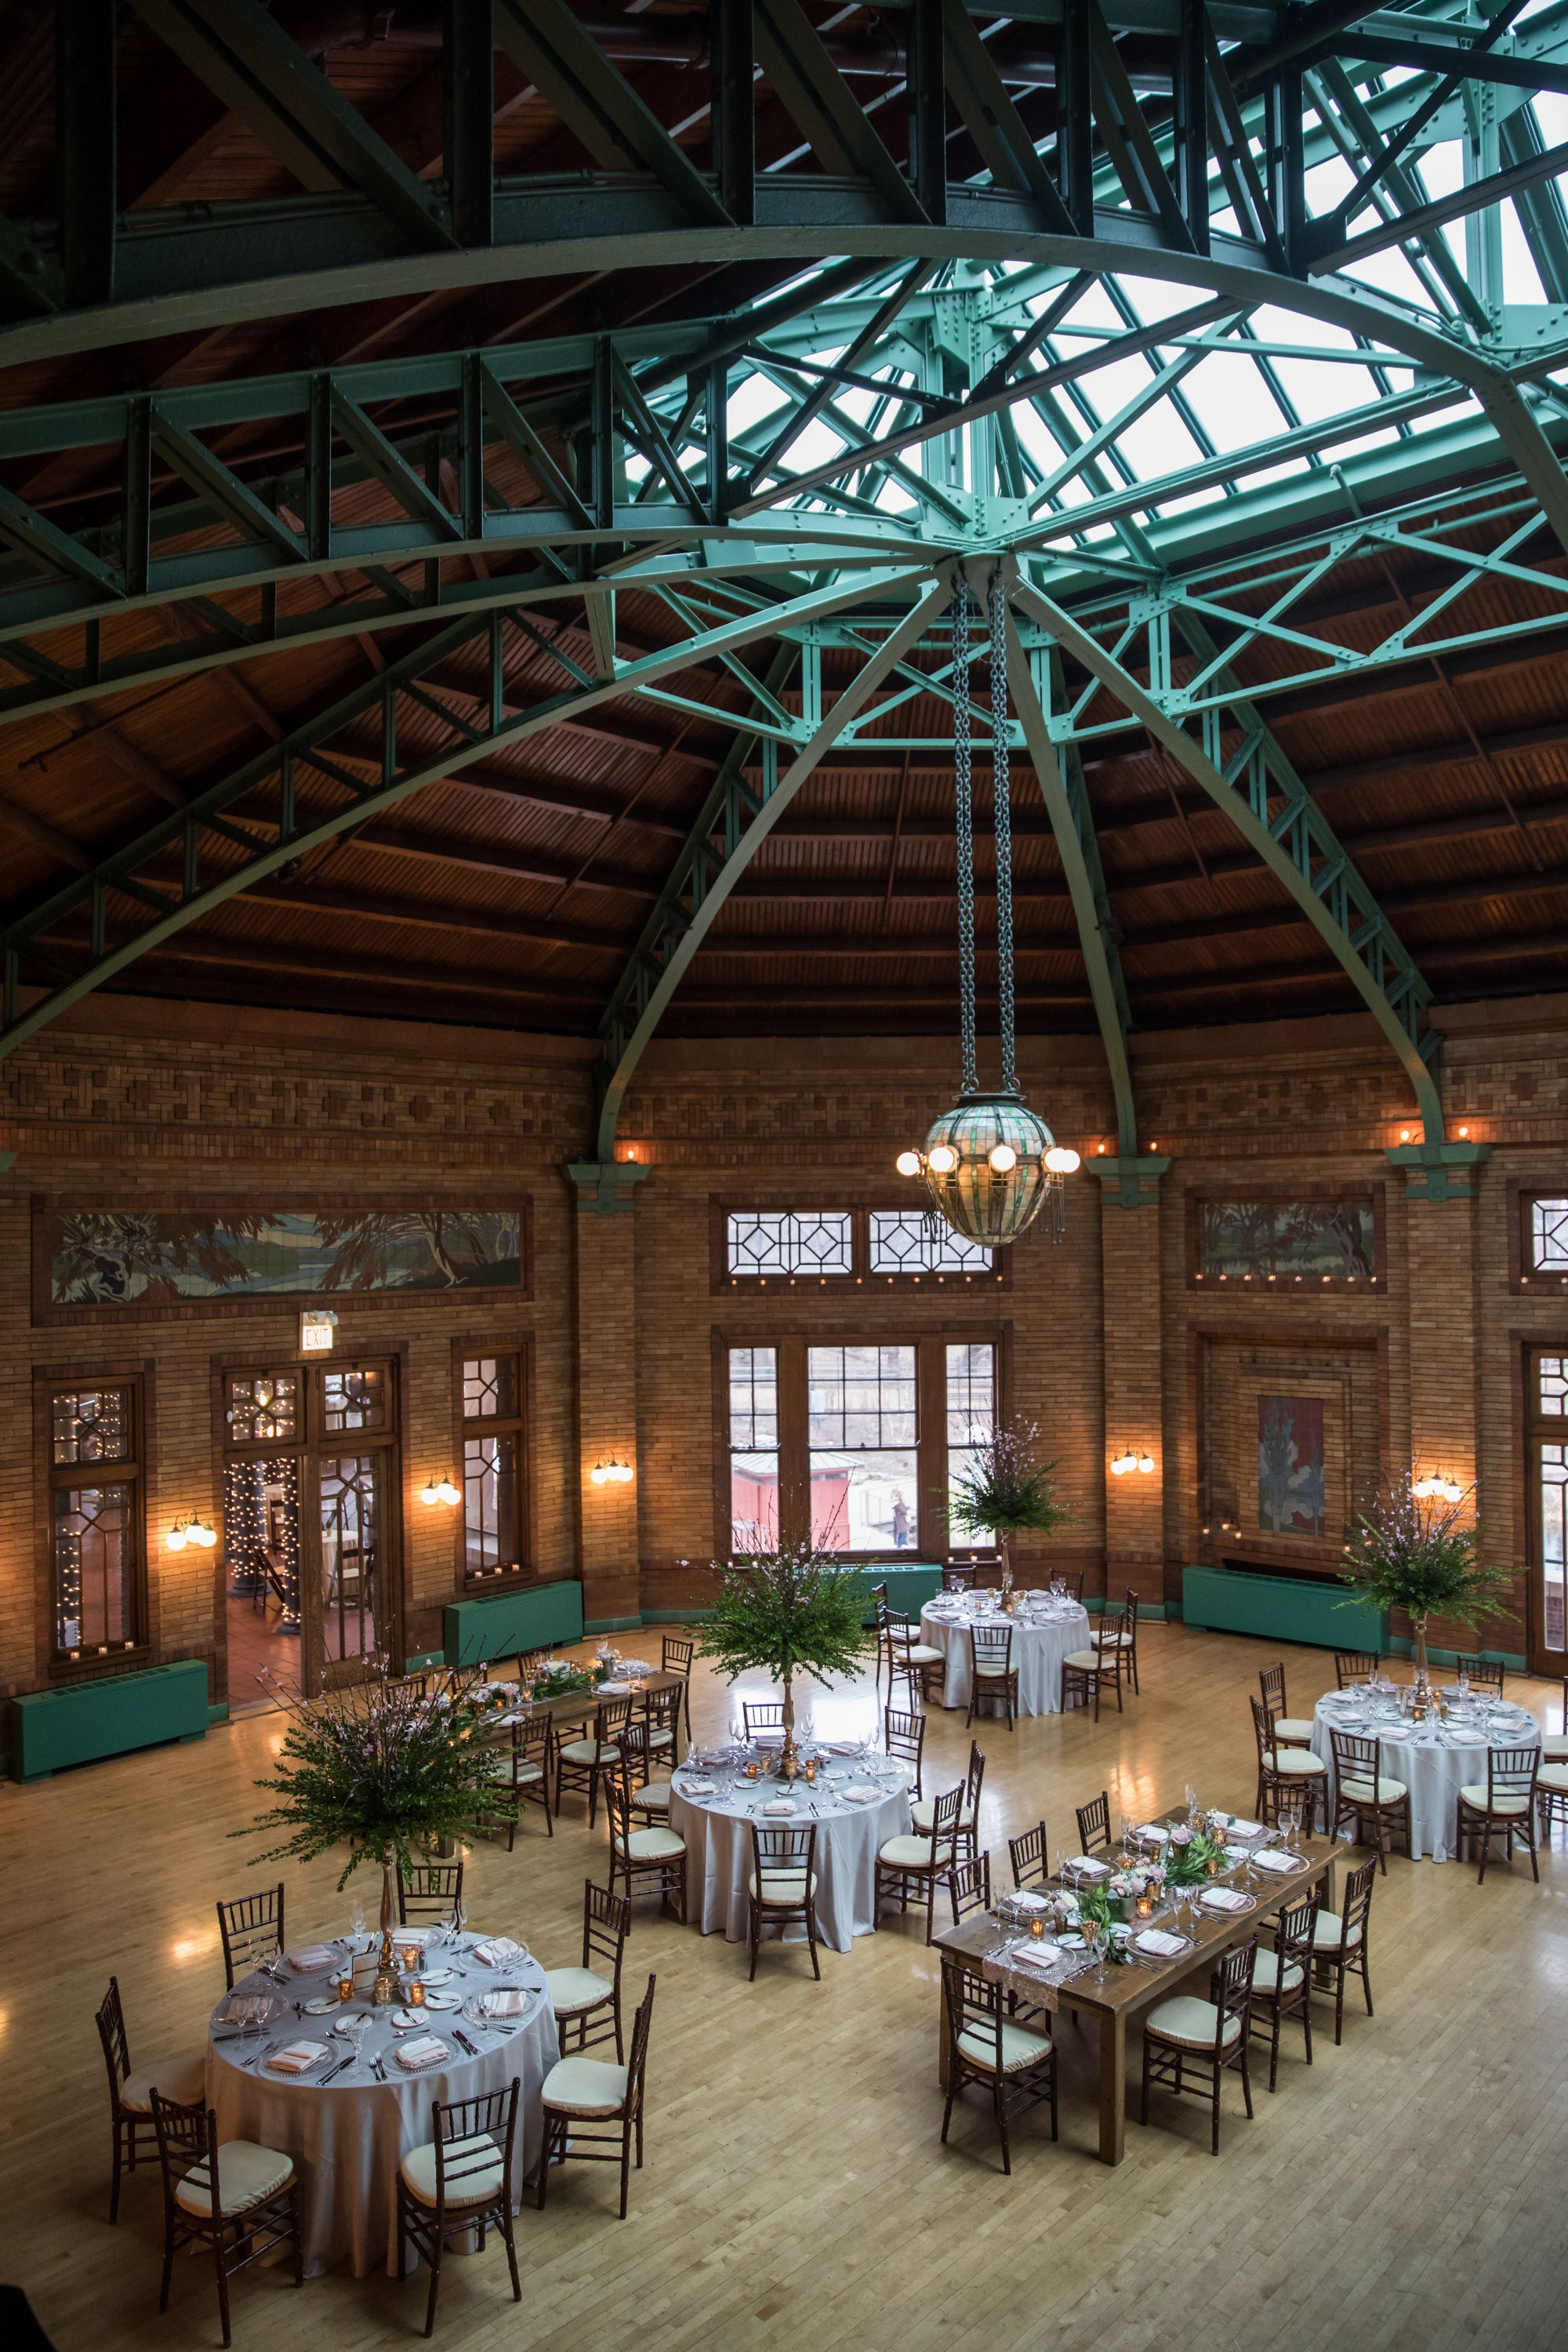 An aerial view of the beautiful Cafe Brauer annkamphoto